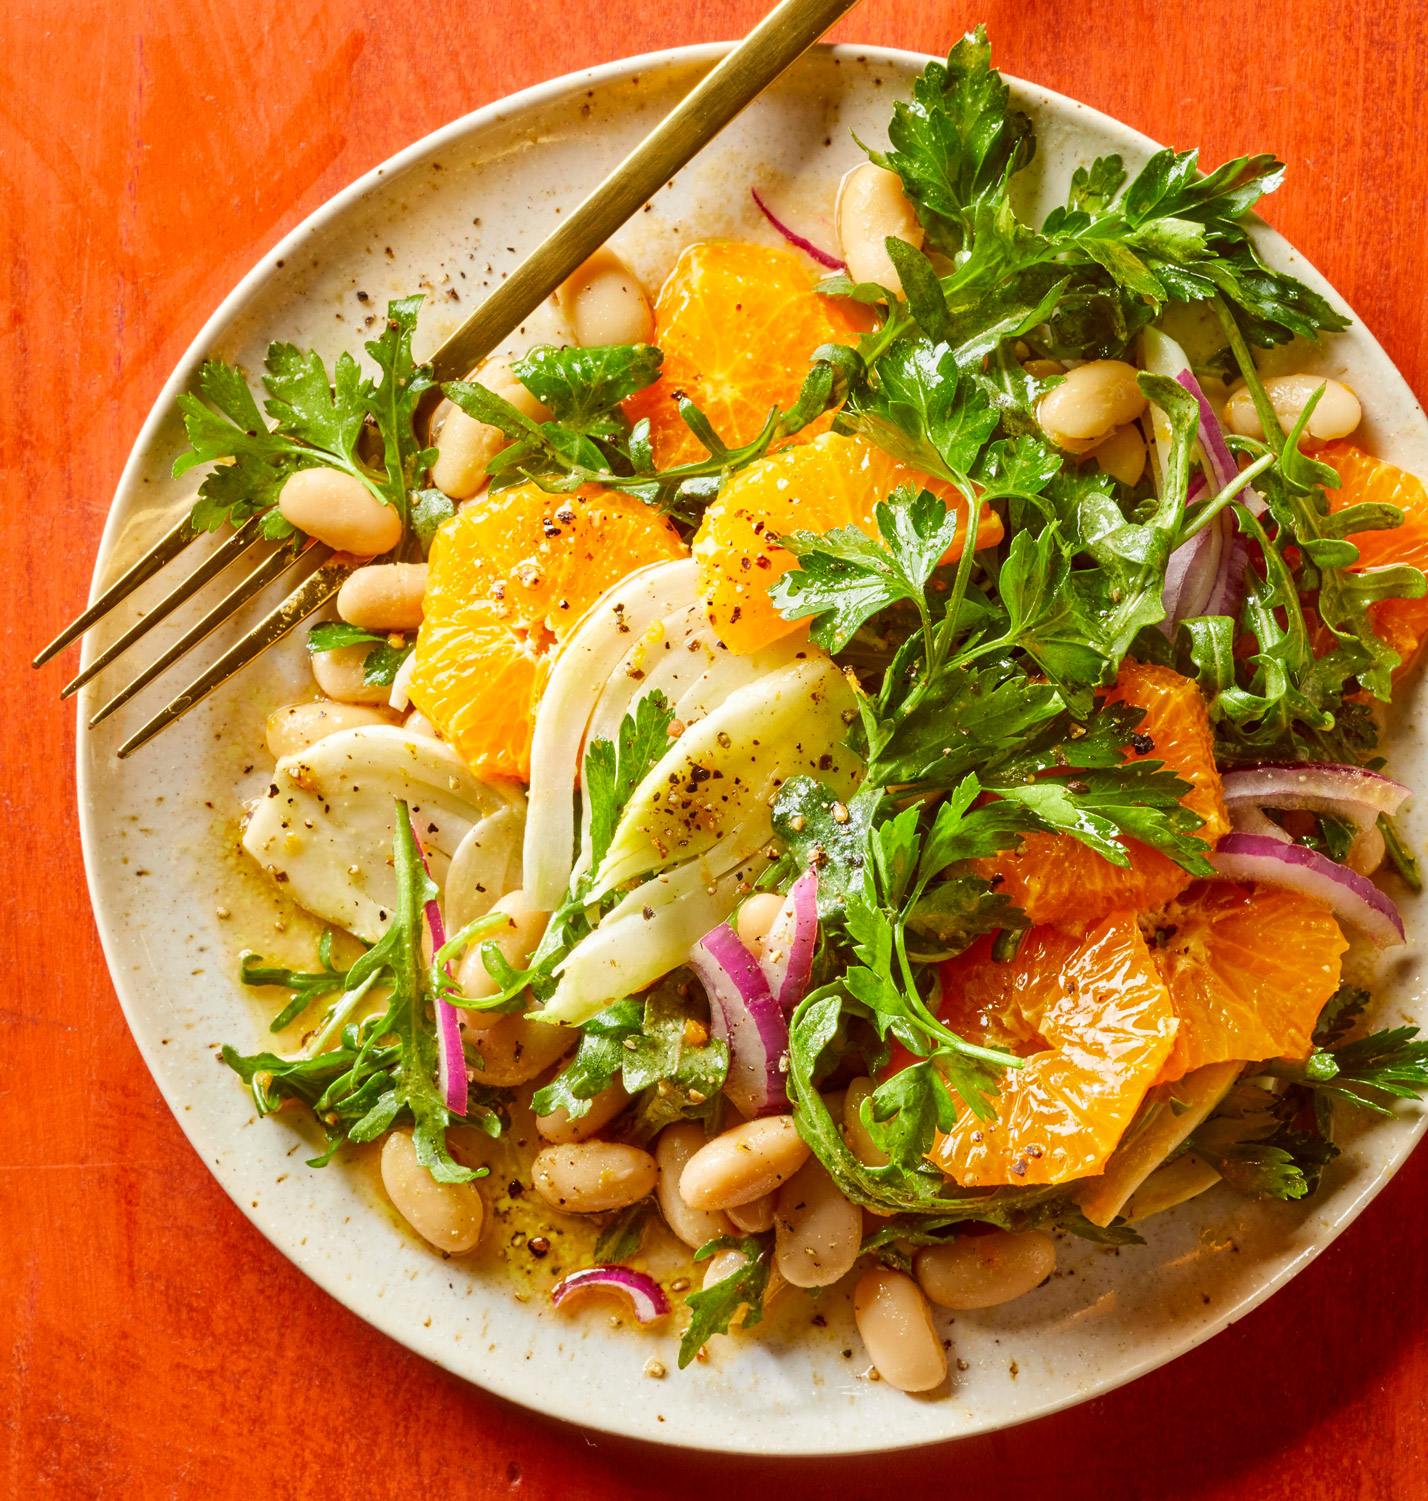 Winter Bean Salad with Fennel and Clementines